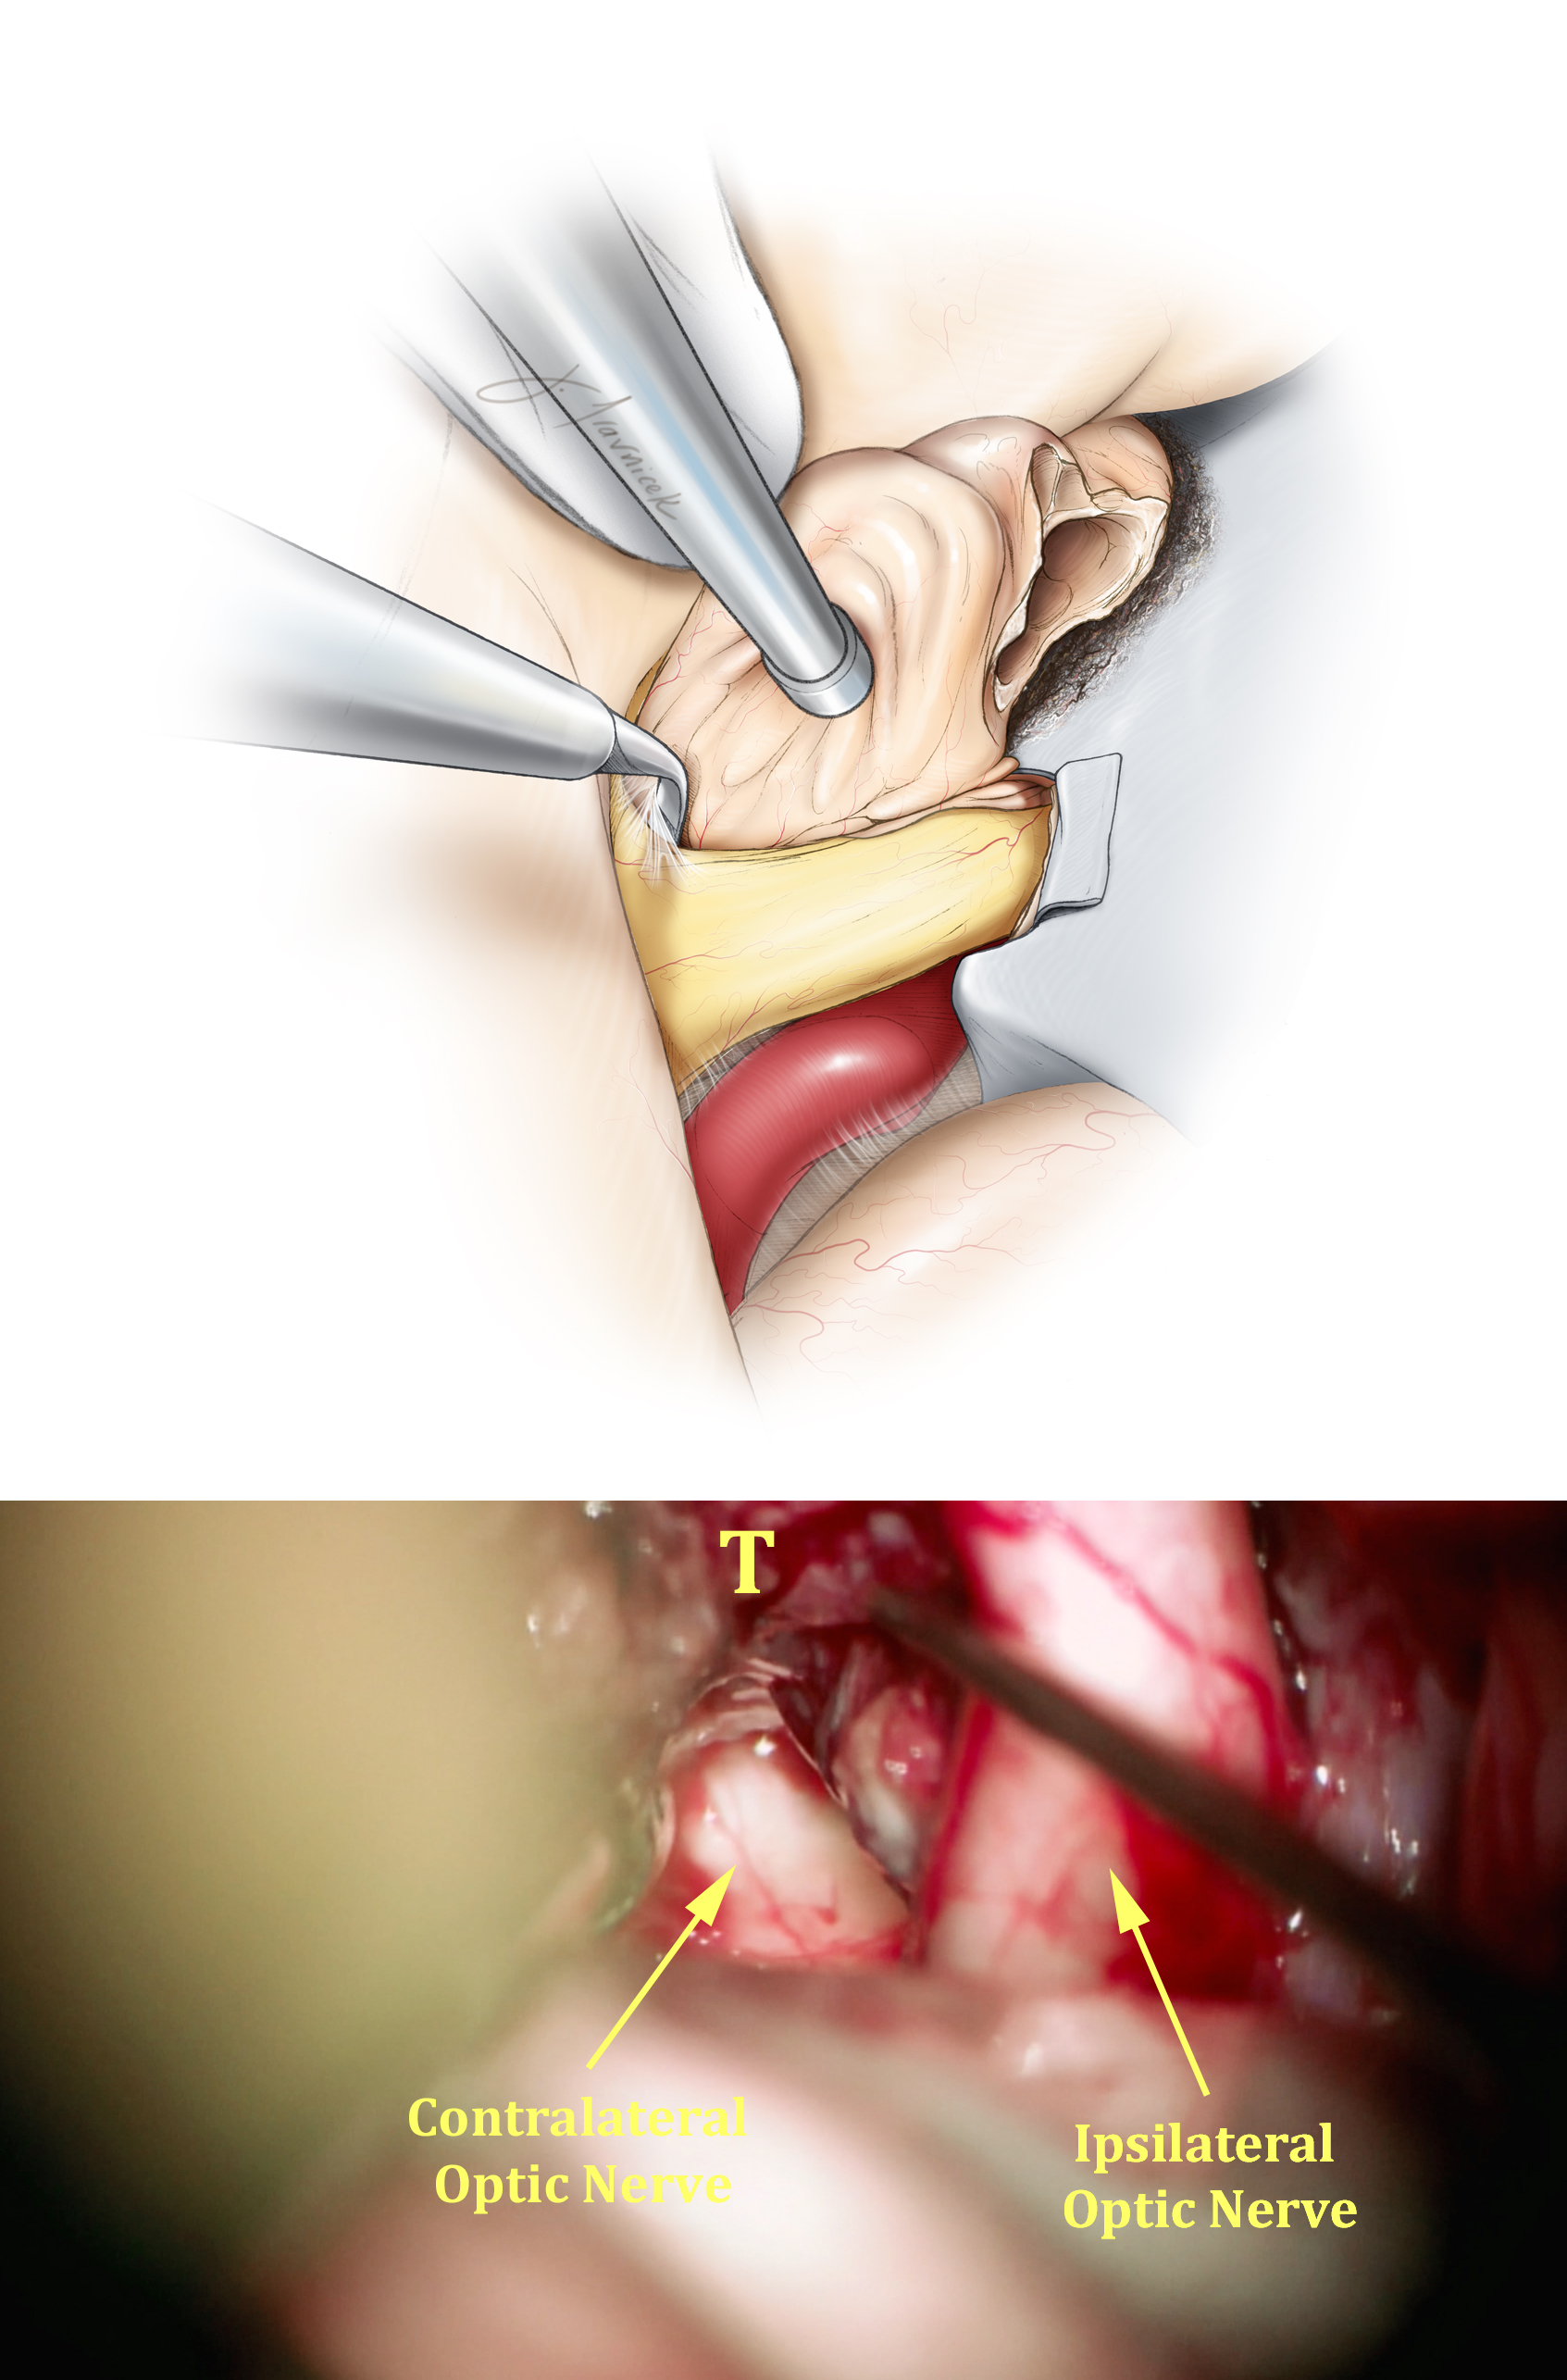 Figure 11: Continuing sharp arachnoid dissection while preserving all pial planes, I carefully extract the tumor away from the ipsilateral optic nerve and chiasm from the anterior to posterior direction (top illustration).  This critical step leads to the exposure of the contralateral chiasm and posterior aspect of the contralateral optic nerve (bottom photo, T:Tumor).  Aggressive manipulation of the chiasm invariably leads to worsening of vision. The tumor should be mobilized away from the chiasm, not vice versa. Anterior cerebral arteries are also released from the superior pole of the tumor capsule at this step of the operation. Extra-pial capsular dissection will detach the tumor from the base of the frontal lobe.